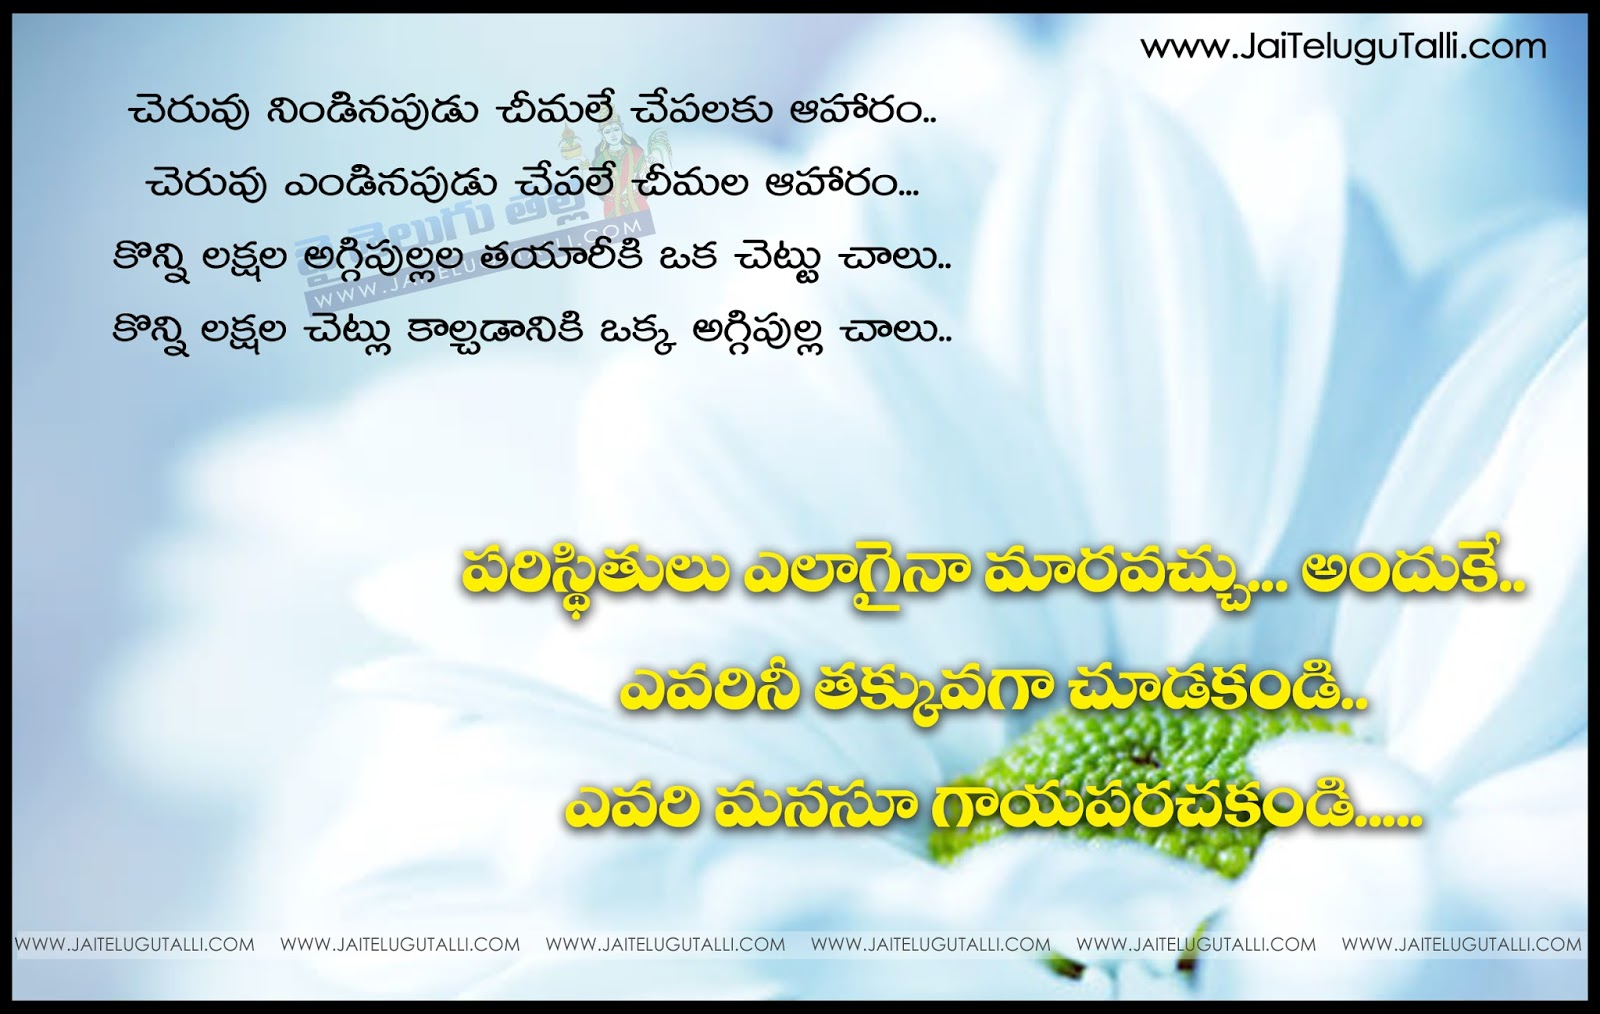 Motivational Messages Famous True Life Quotes In Telugu With Images Best Motivational